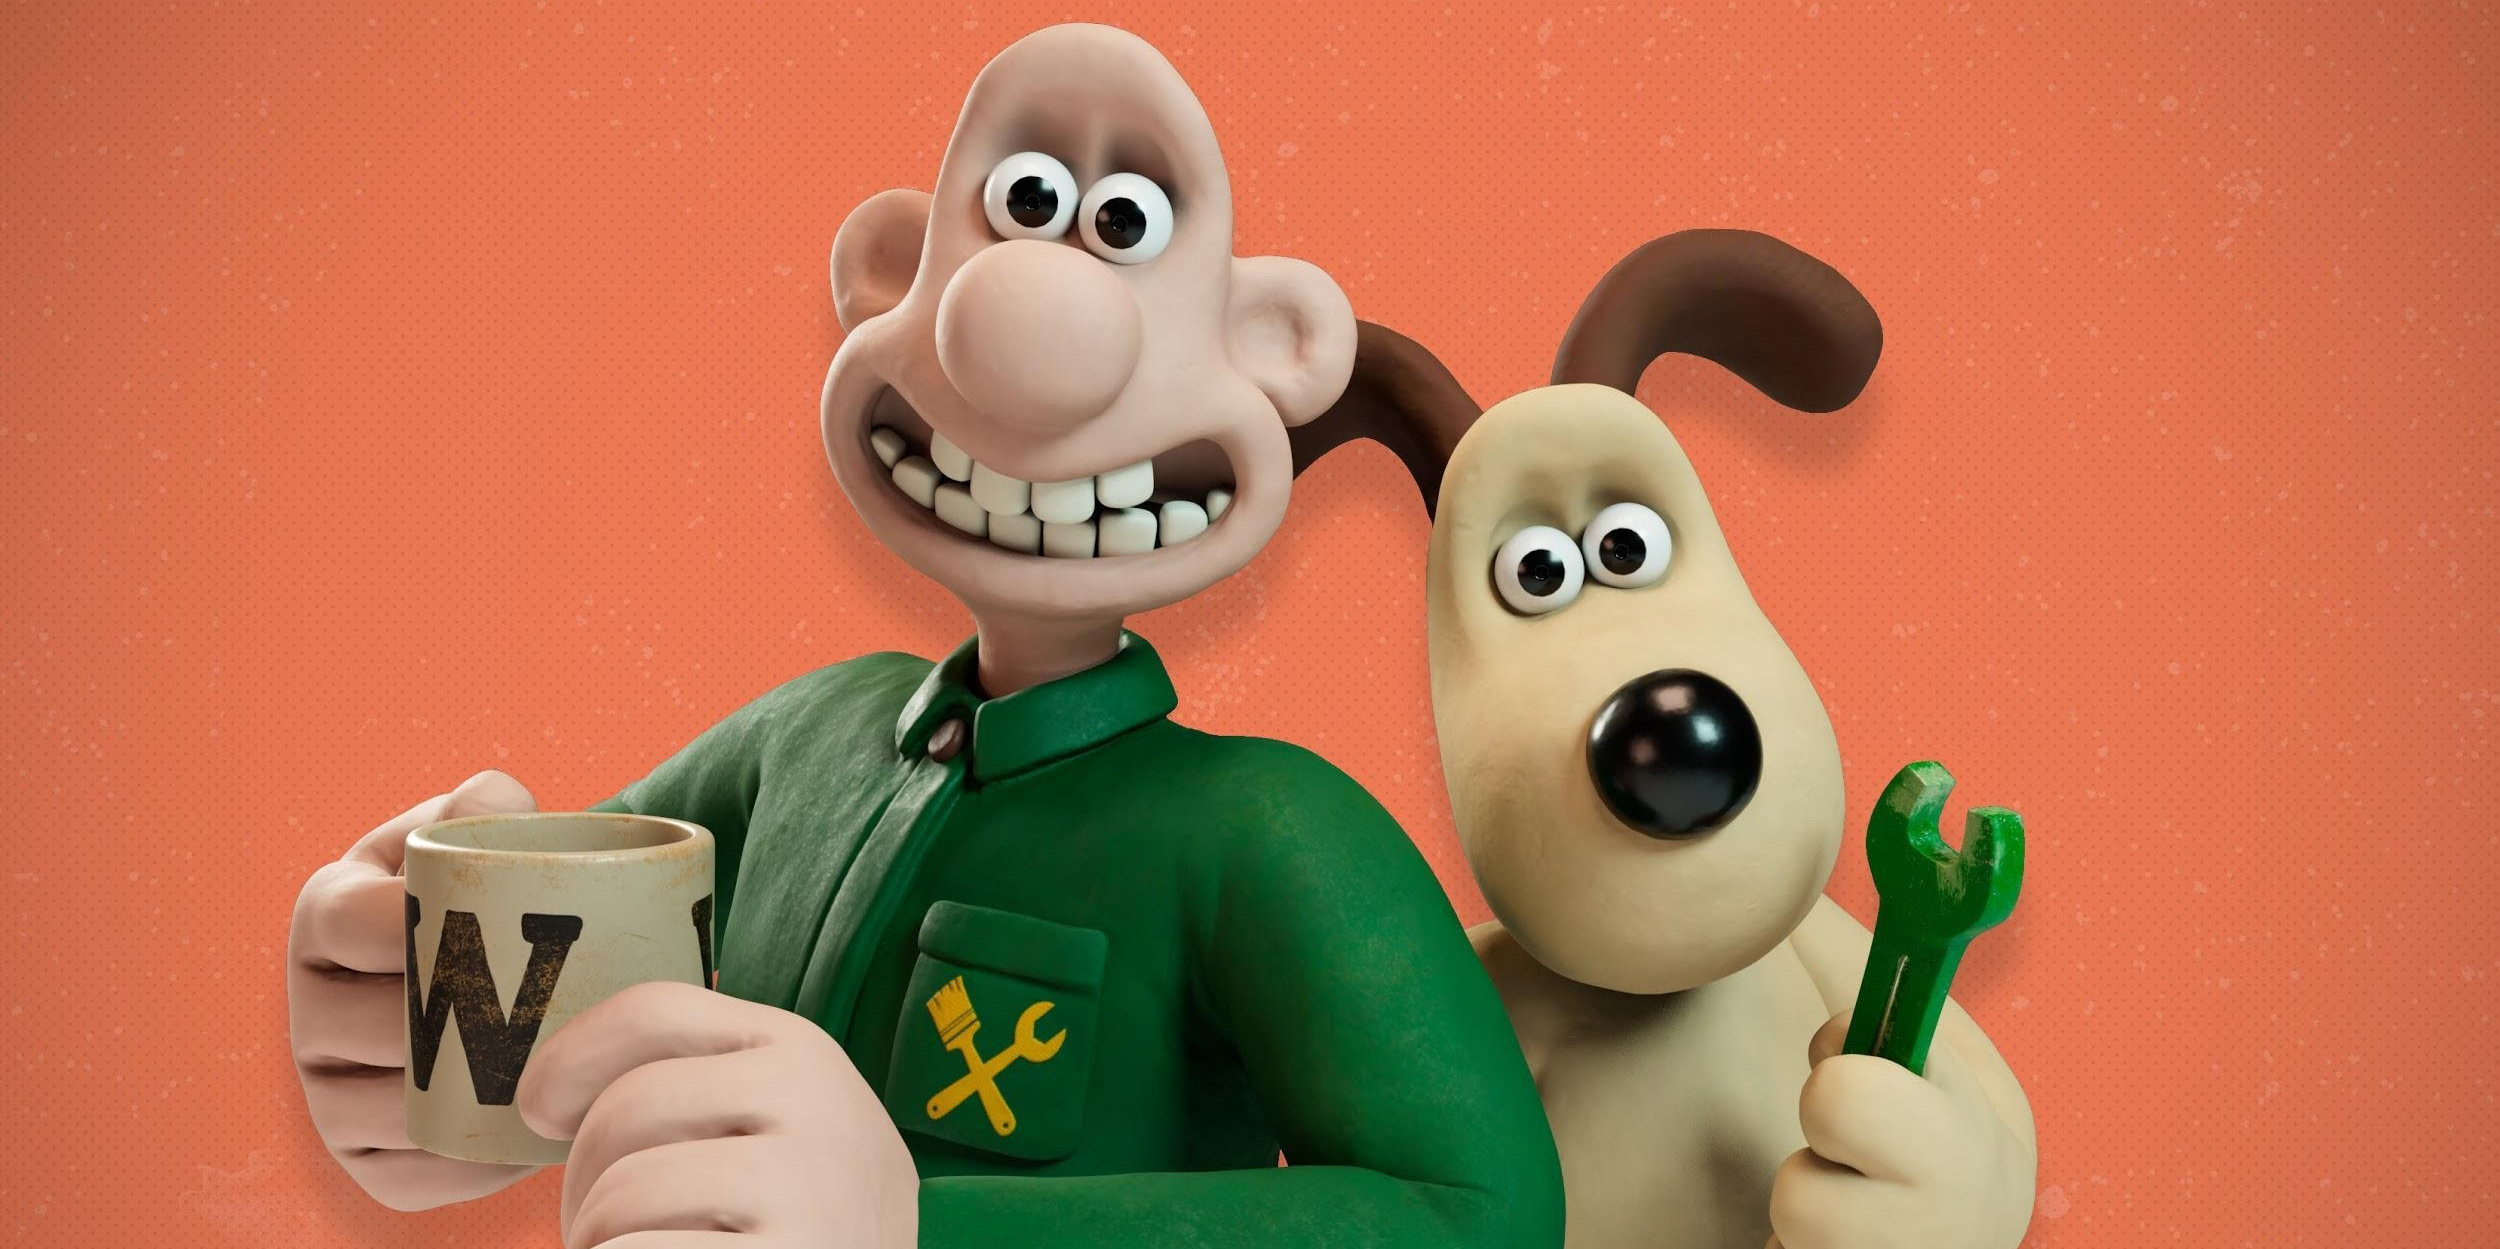 Wallace & Gromit: The Big Fix Up is an ambitious AR game headed to mobile this Autumn